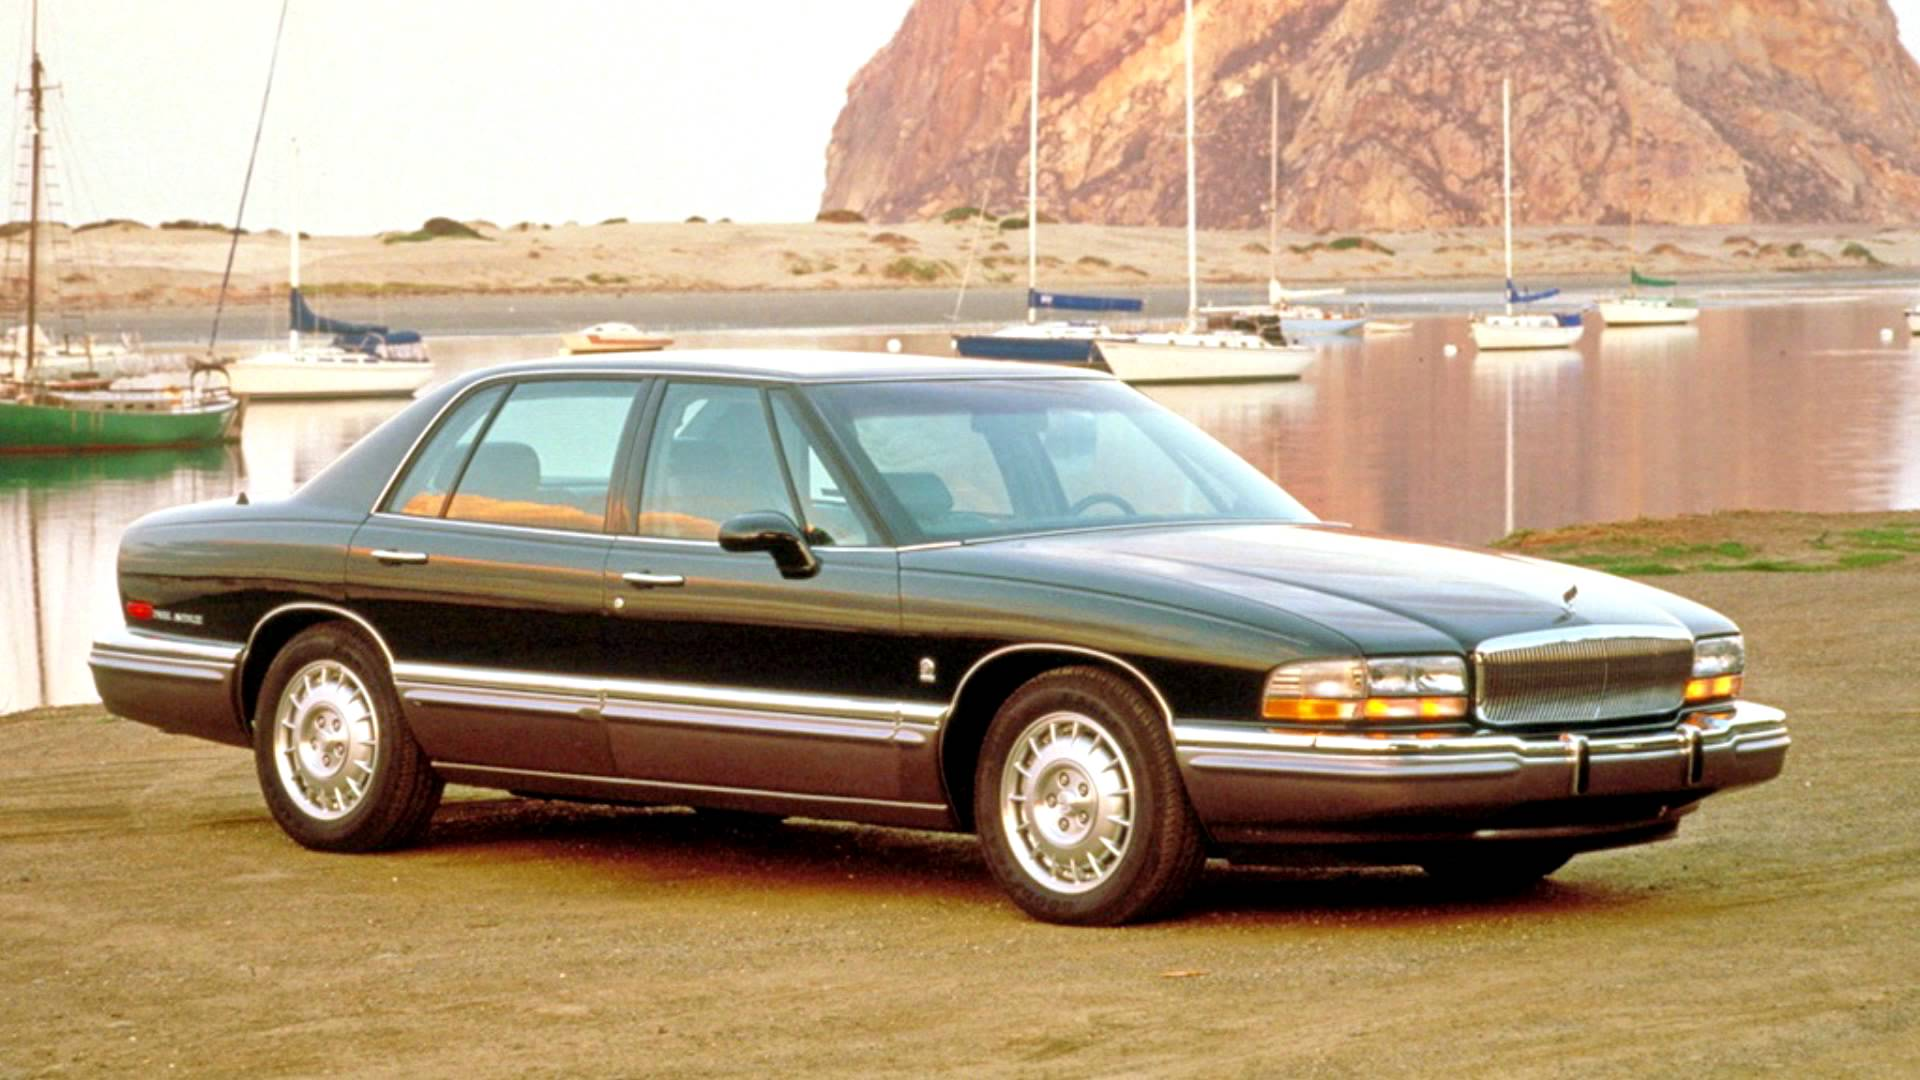 Qotd whats your favorite american vehicle from the 1990s fandeluxe Image collections